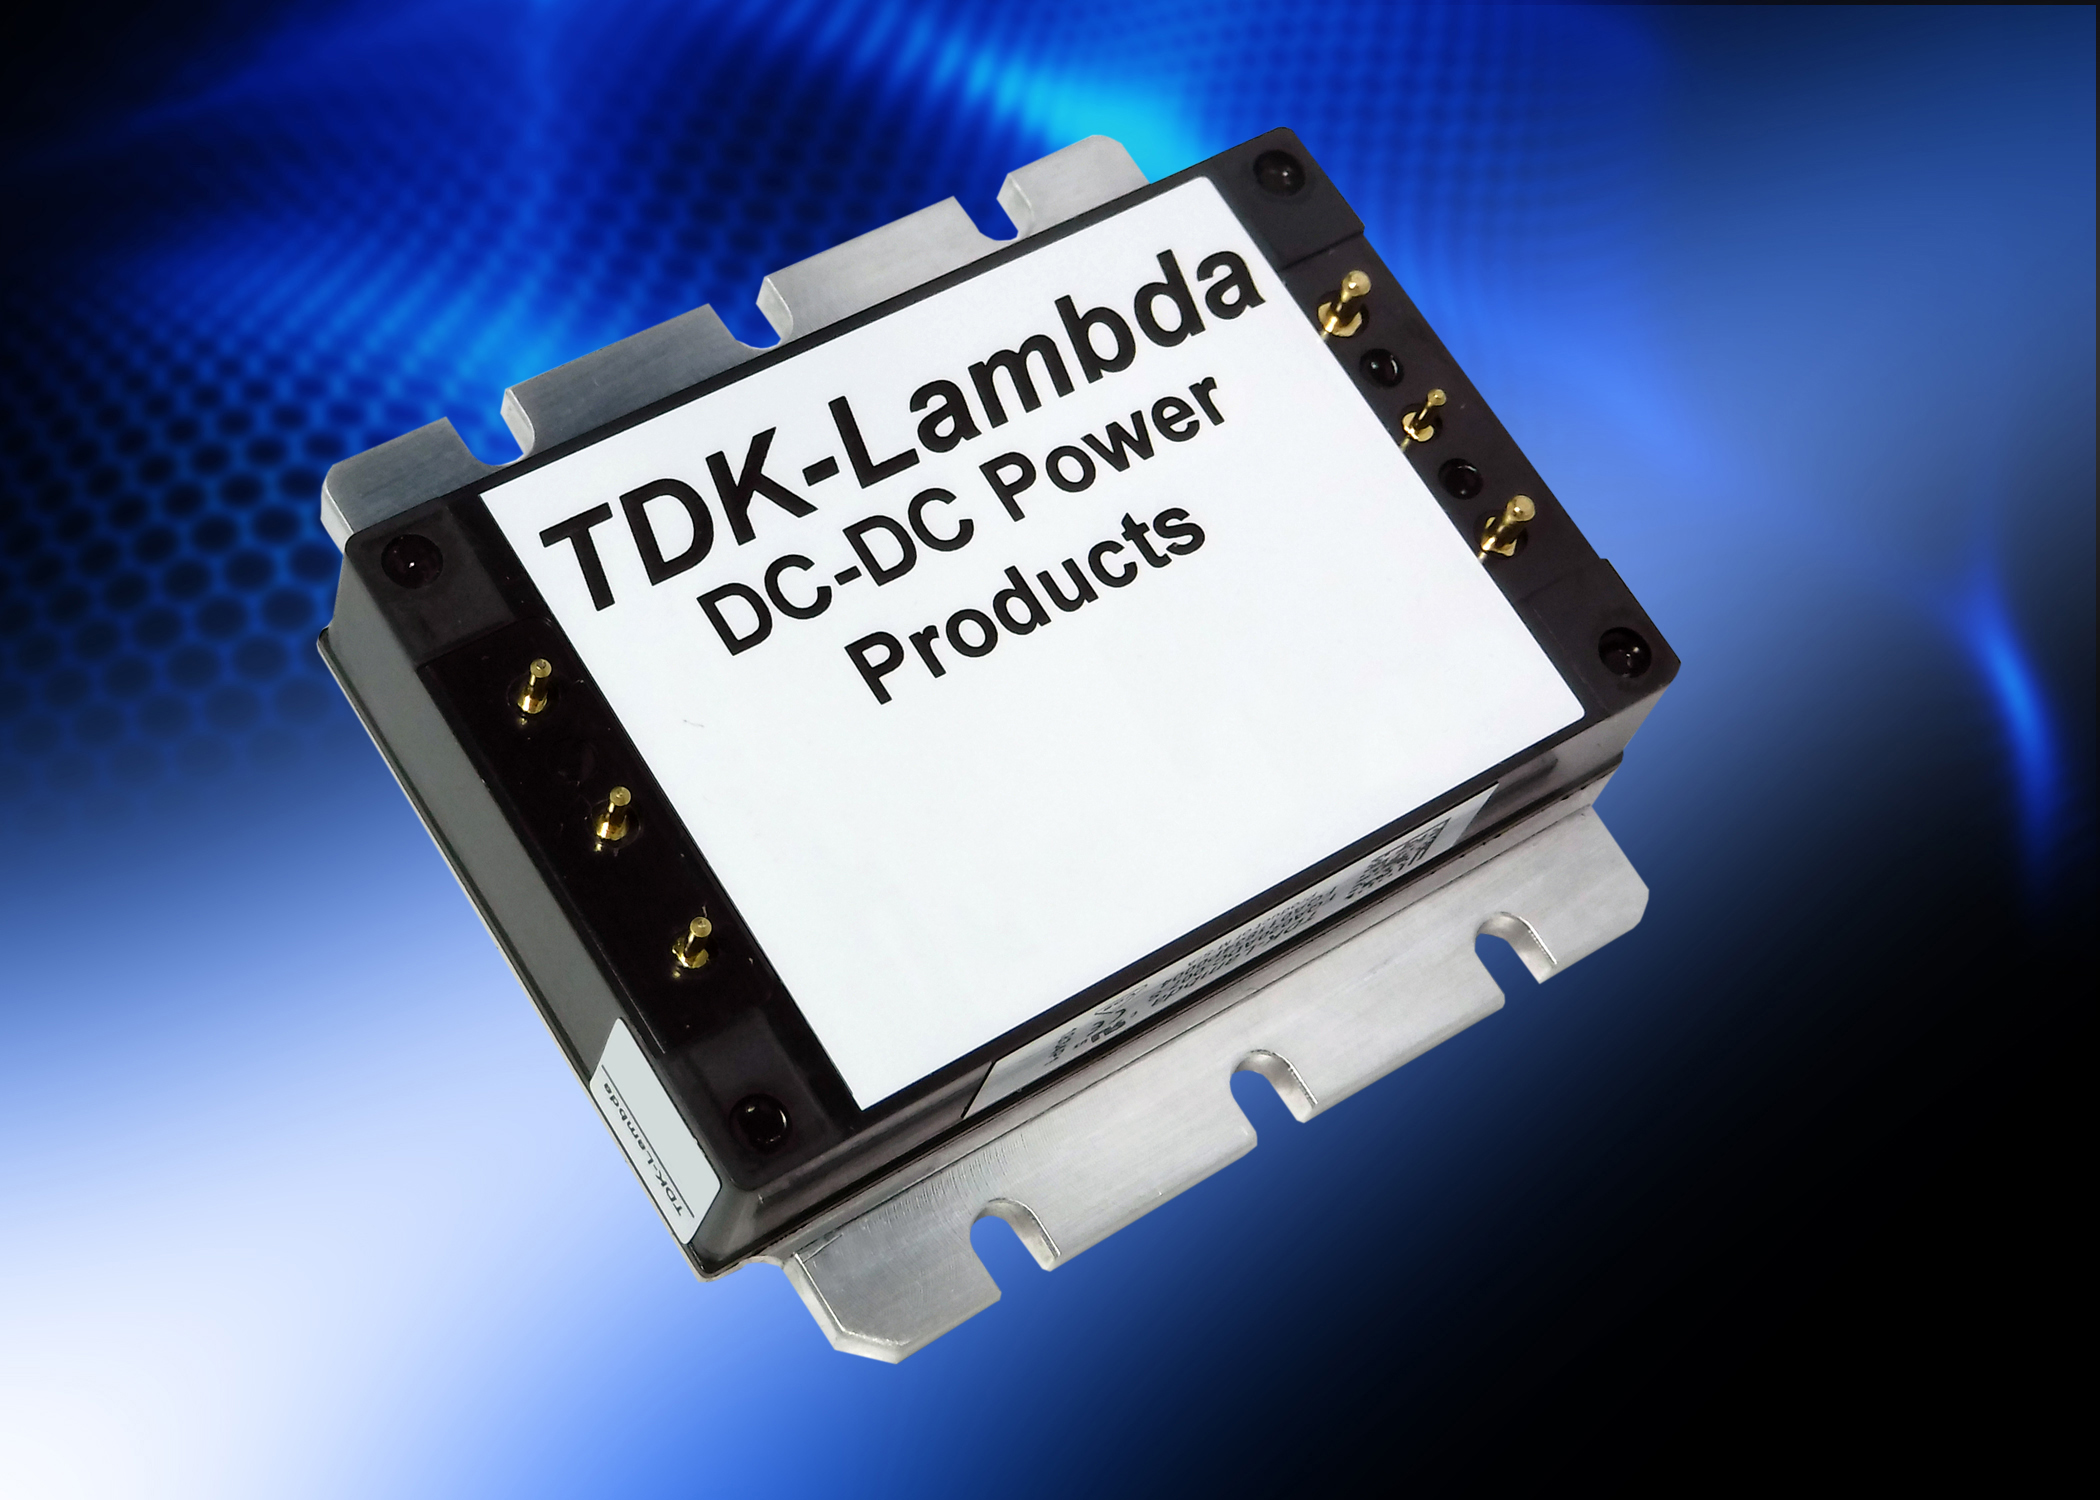 FQA – 20 A 40 Vdc EMI filters simplify compliance to MIL-COTS applications